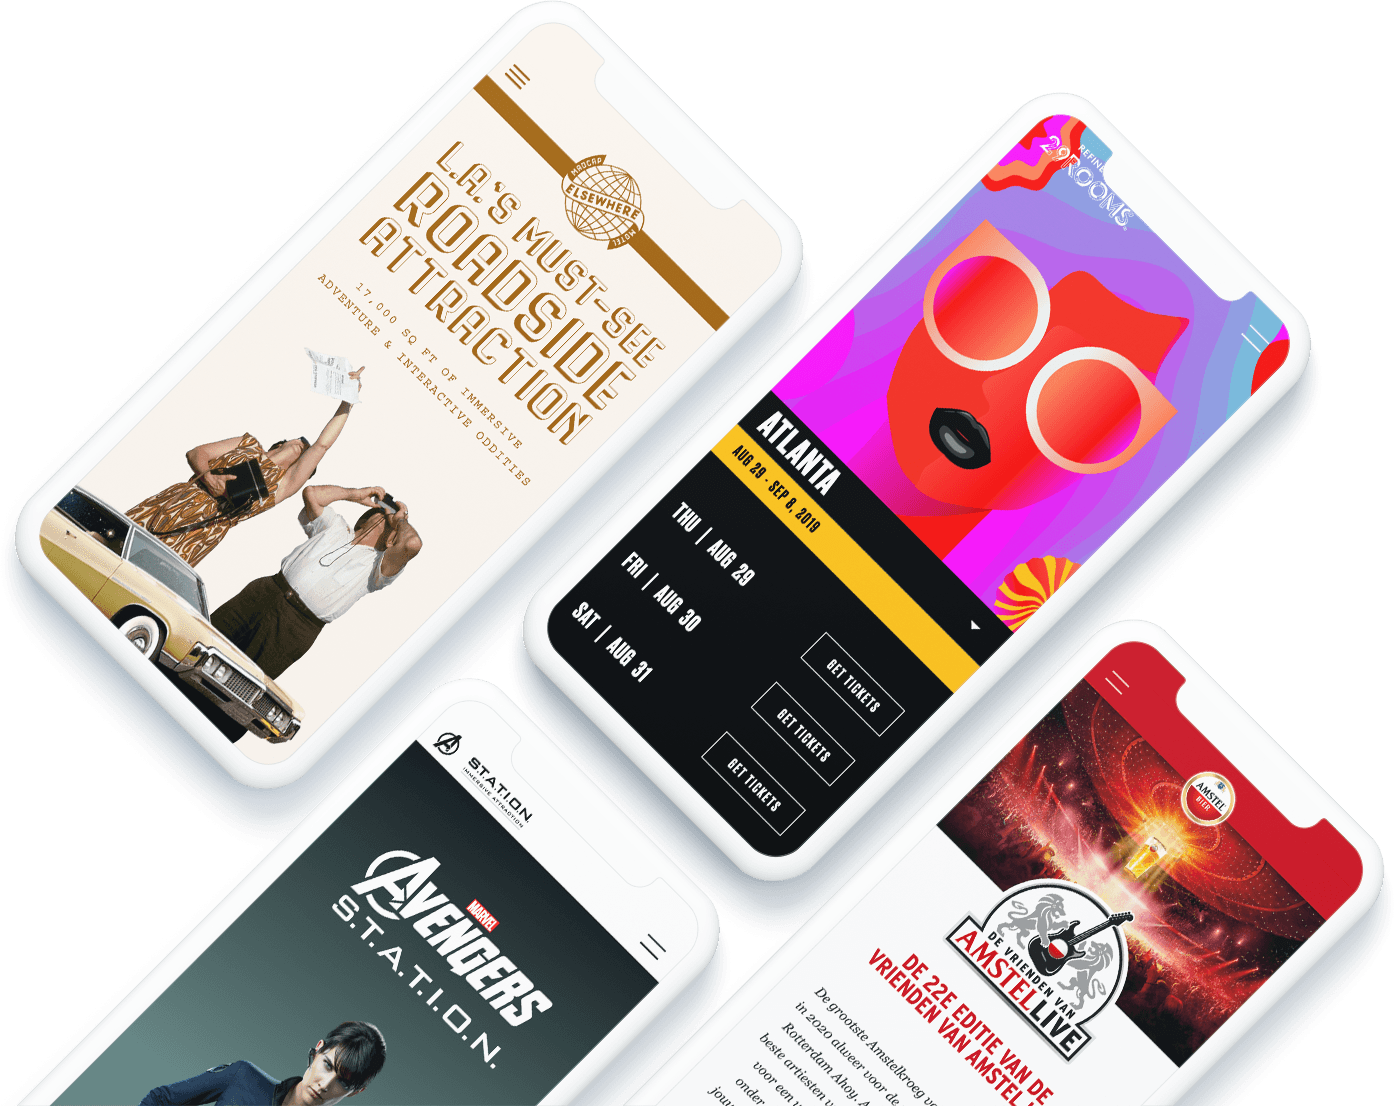 Mobile phone images with Ample account services mockups. Eventbrite, Mailchimp, Website examples.